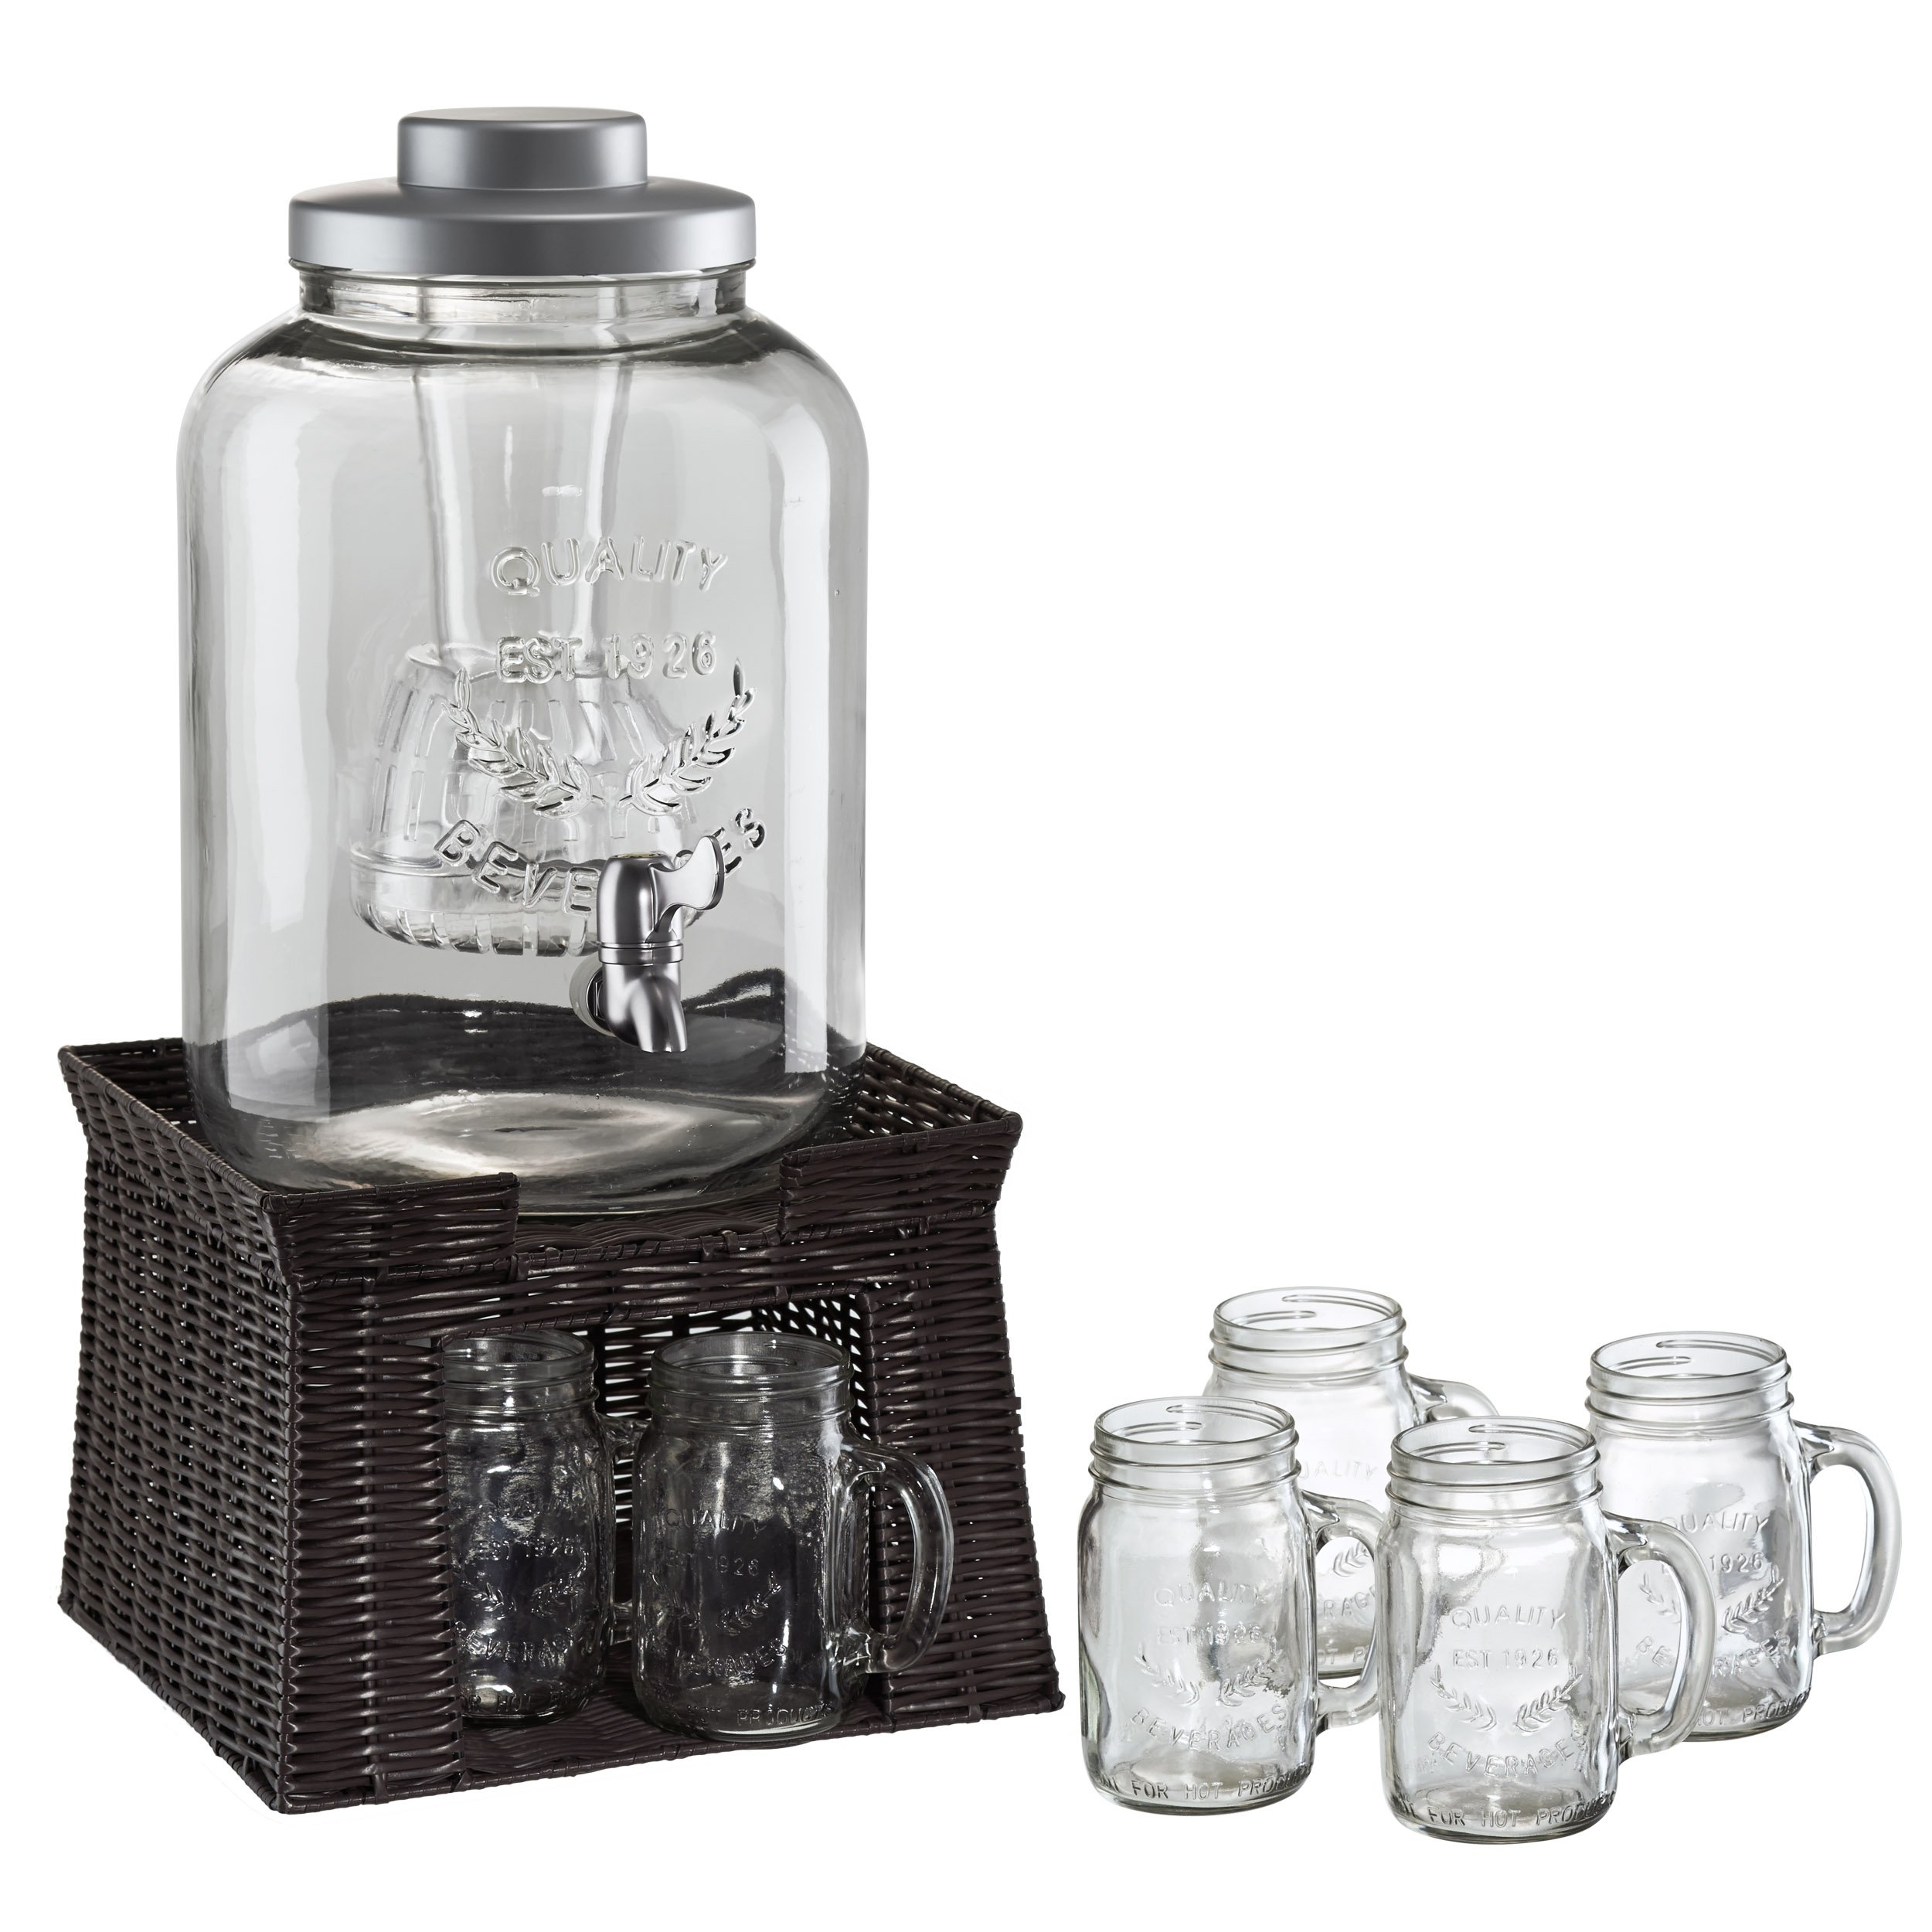 Artland Masonware Beverage Jar with Chiller and Infuser, 6 Mason Jars, Faux Wicker Stand by ARTLAND (Image #1)